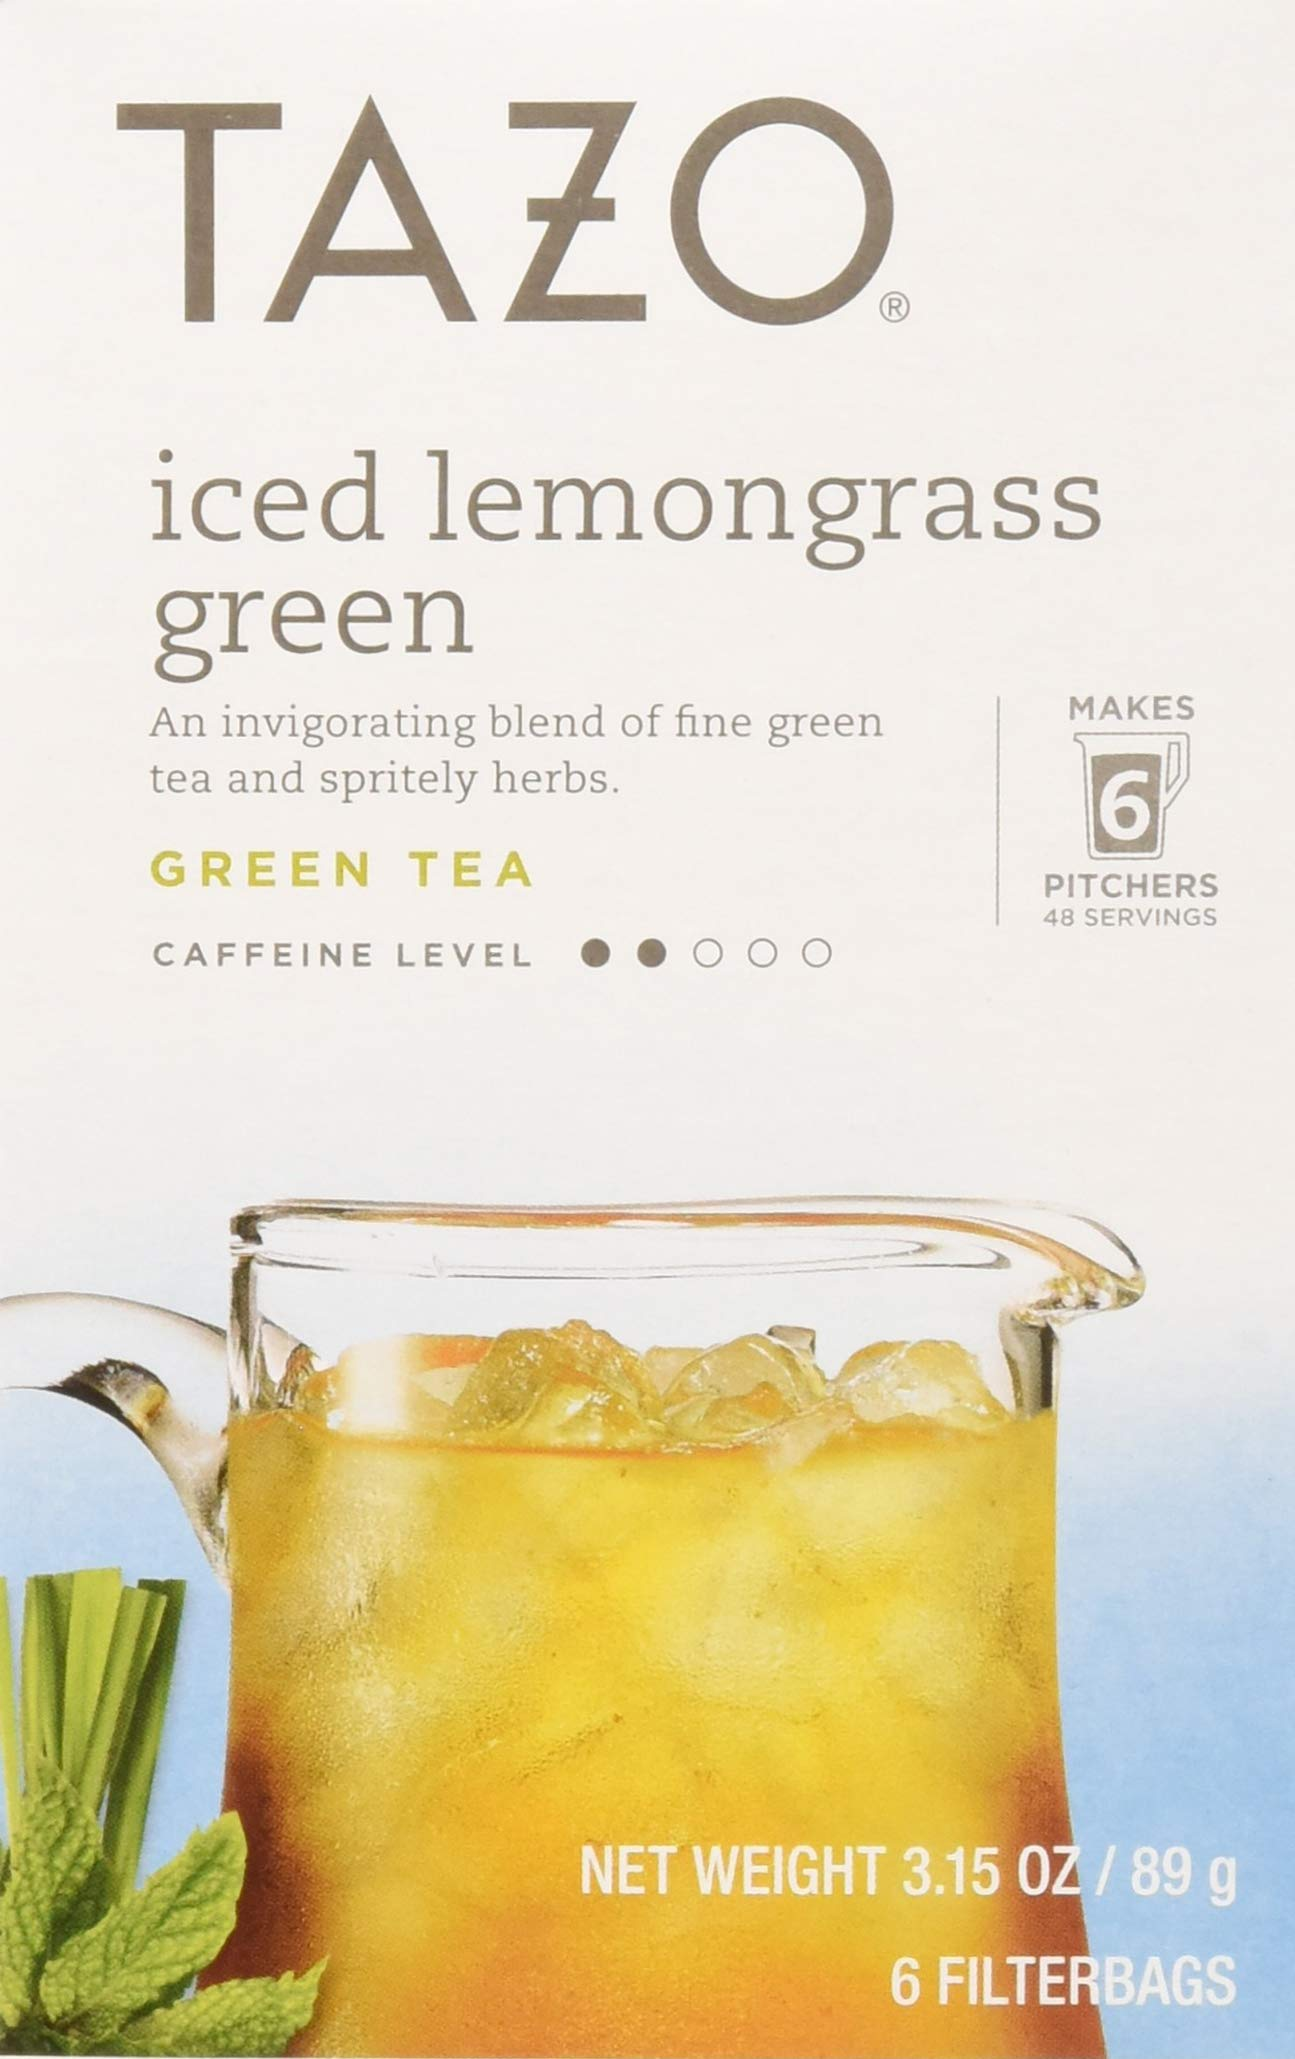 Tazo Tea Bag, Iced Lemongrass Green, 6 Count, Pack of 4 by TAZO